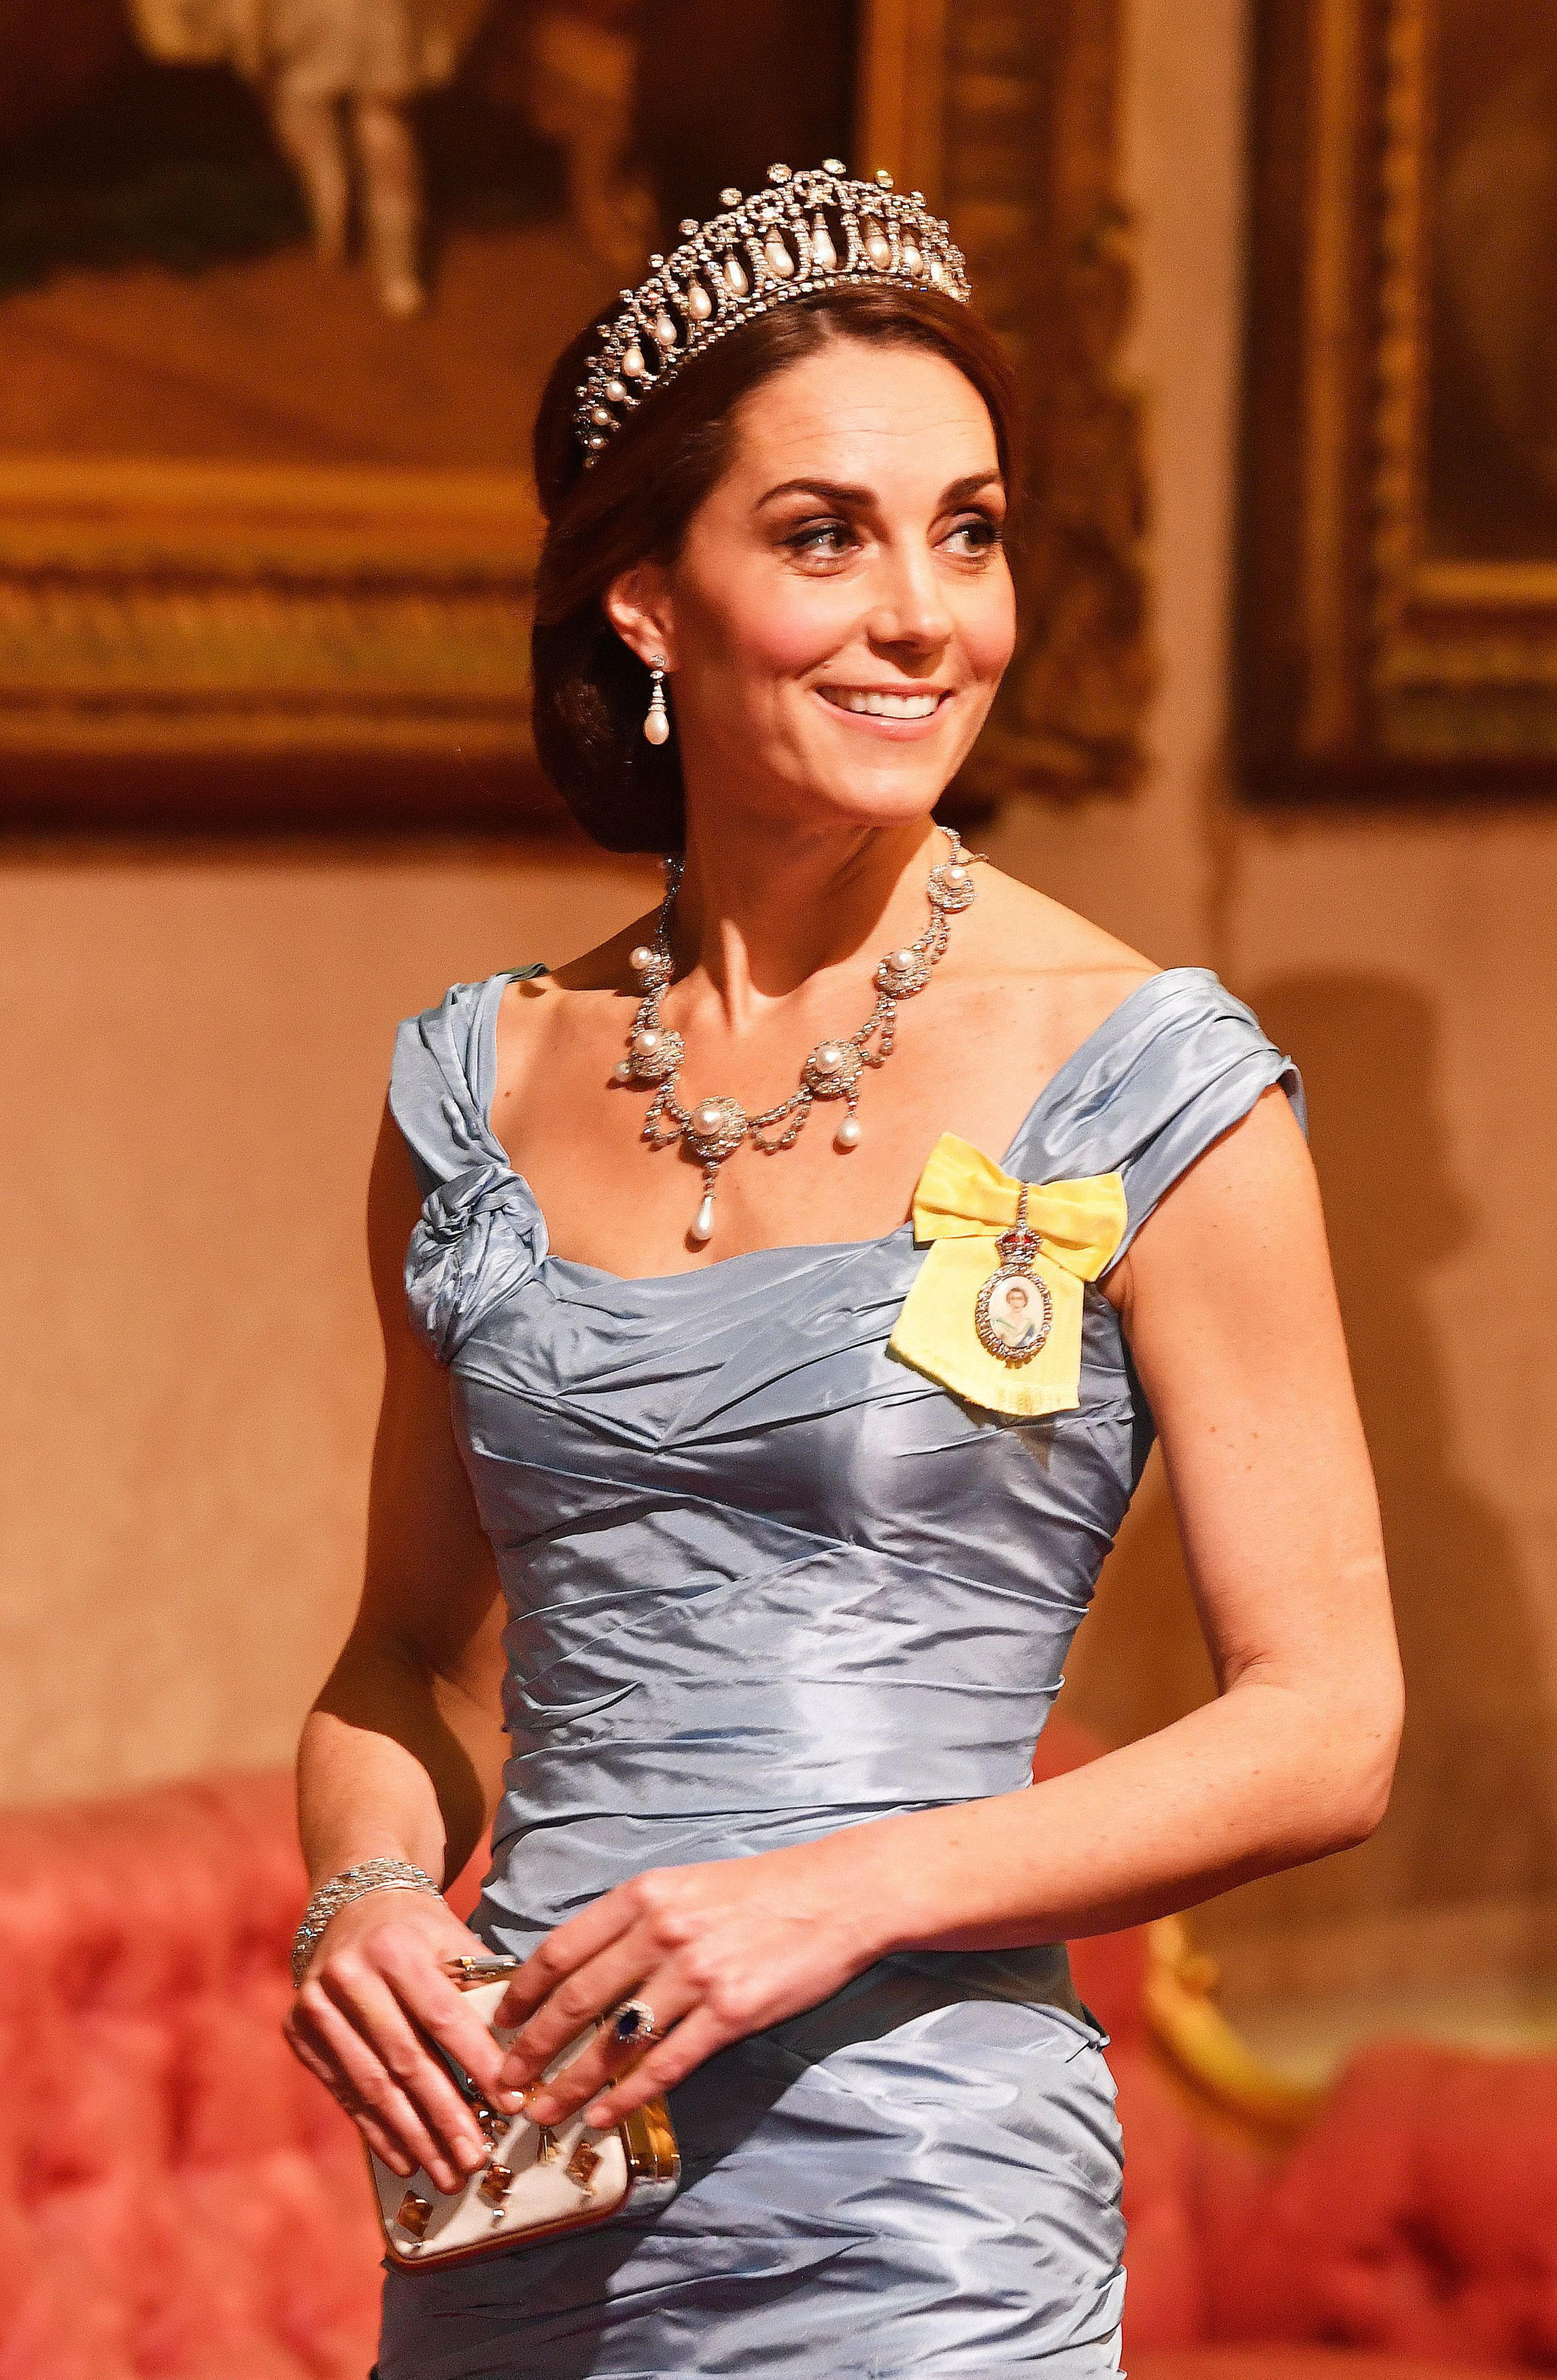 The Duchess of Cambridge during the state visit by King Willem-Alexander and Queen Maxima of the Netherlands,...